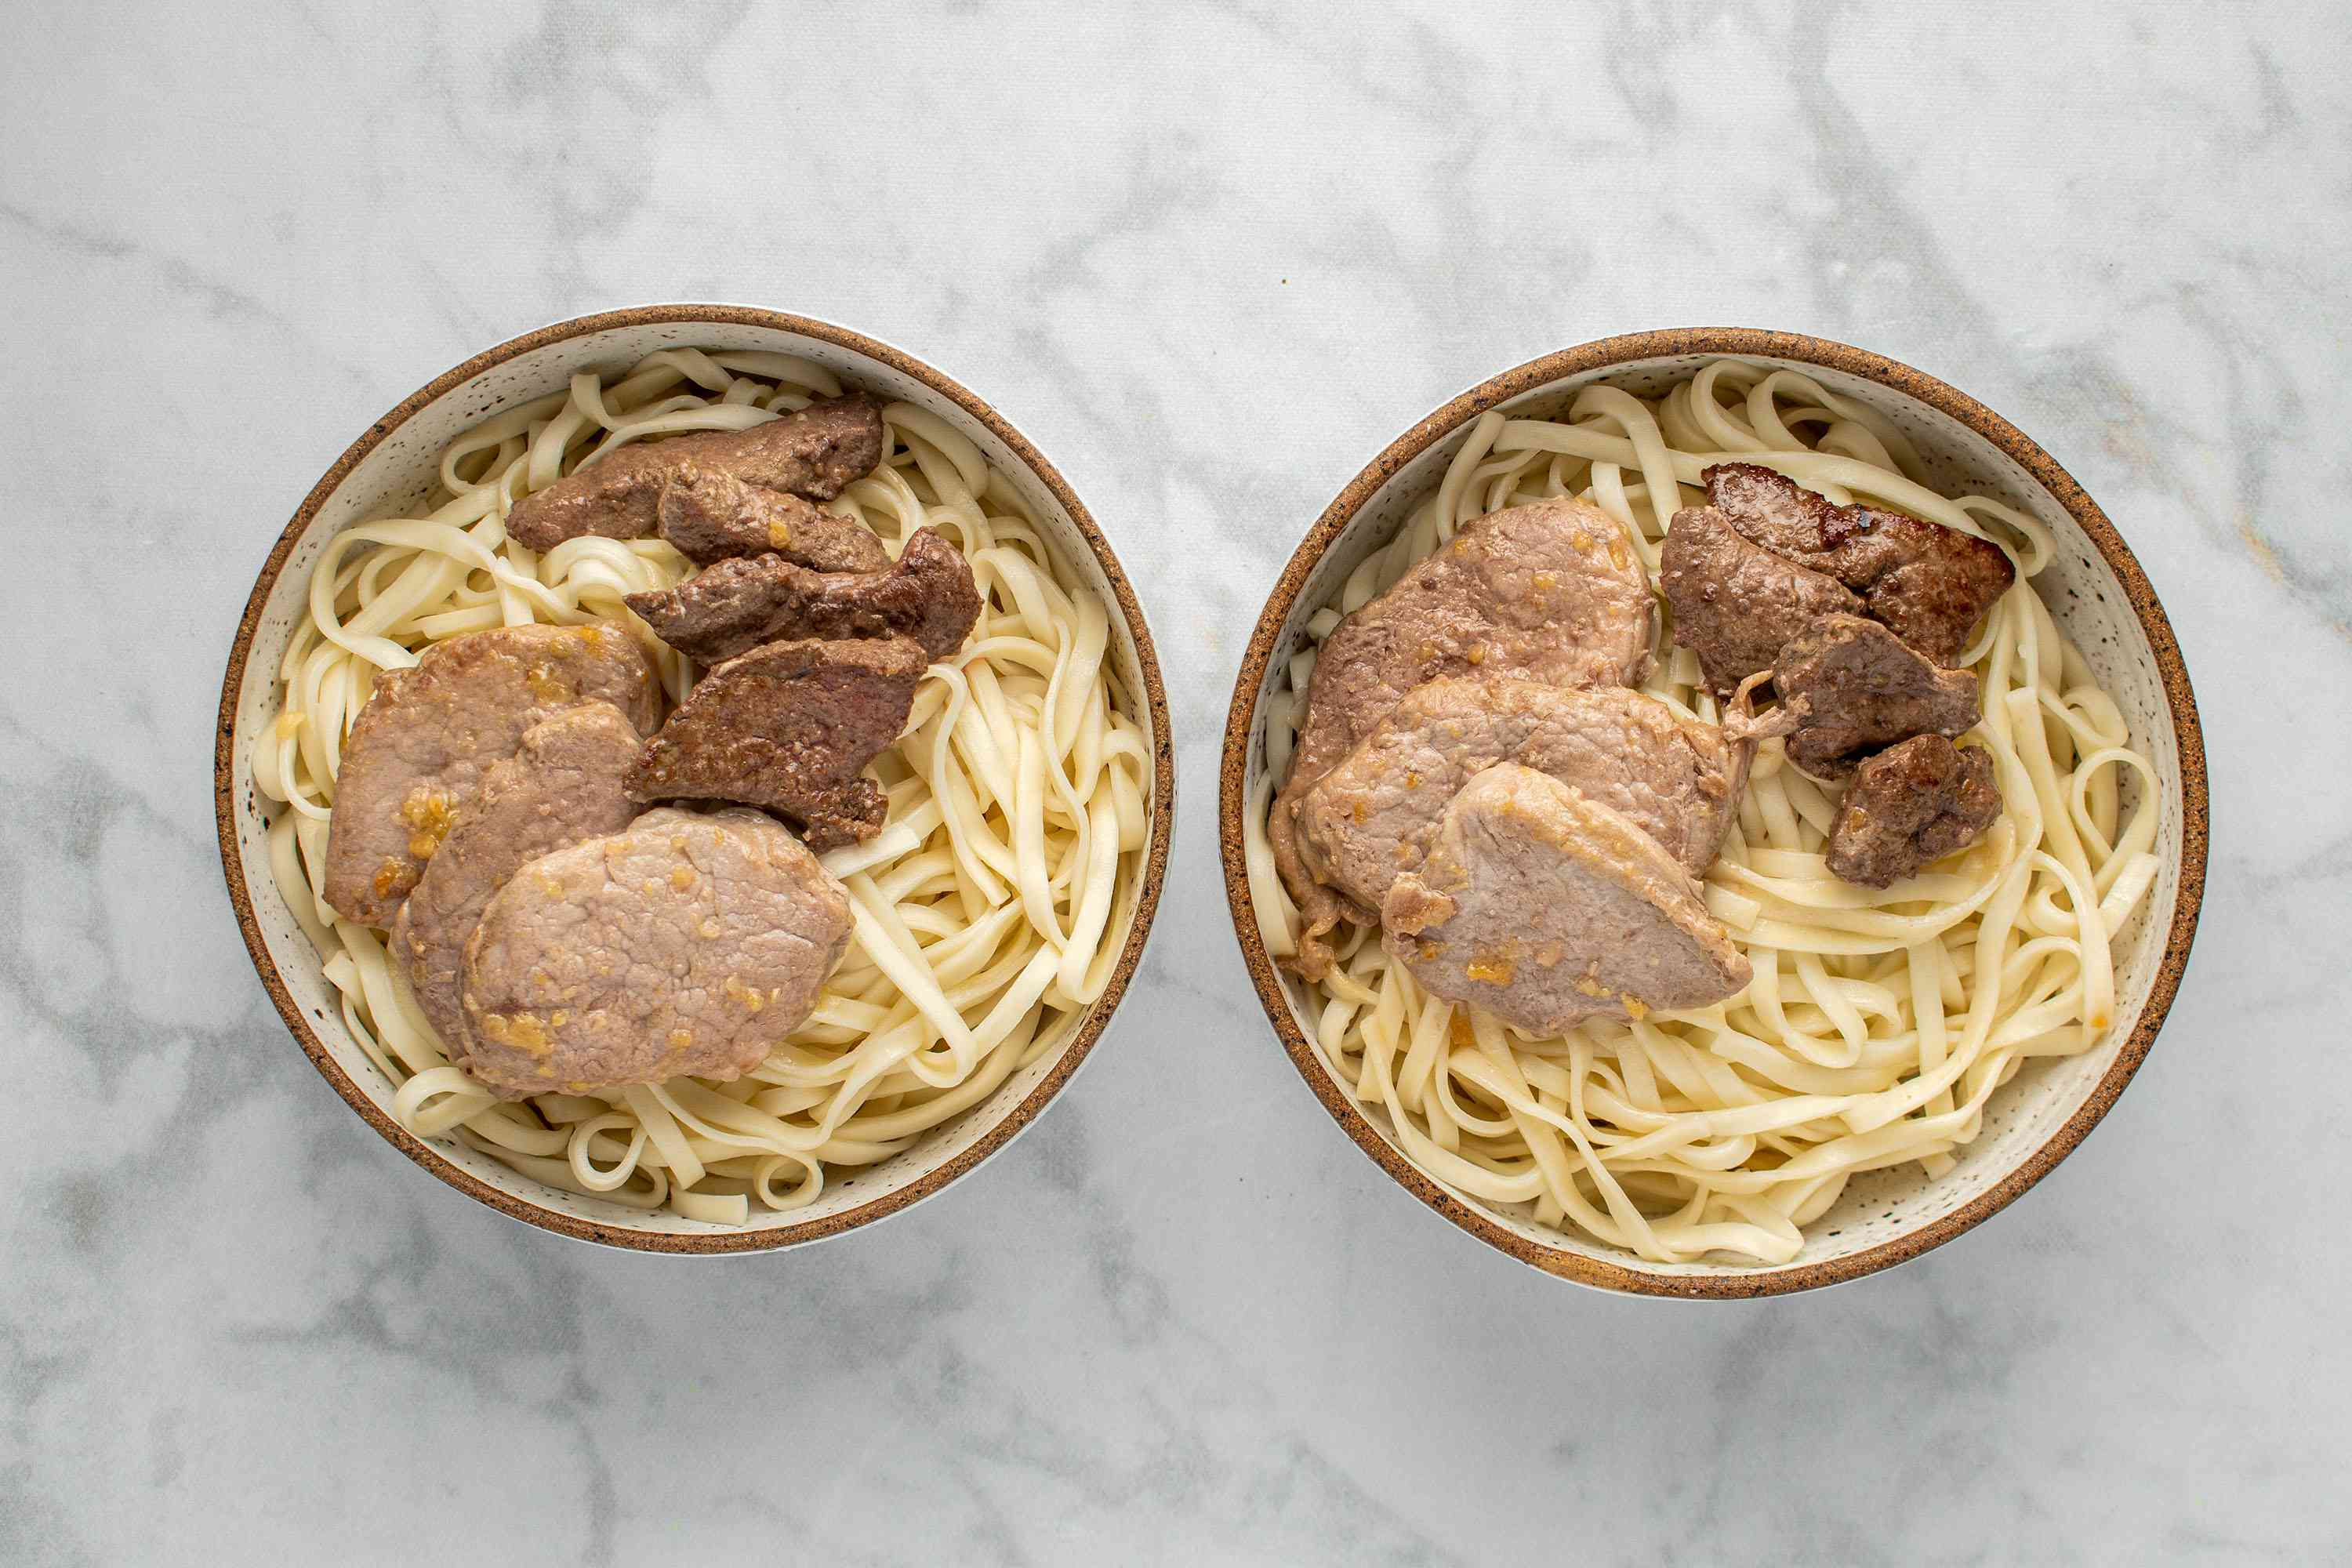 Divide the sauteed meat between the two bowls with noodles